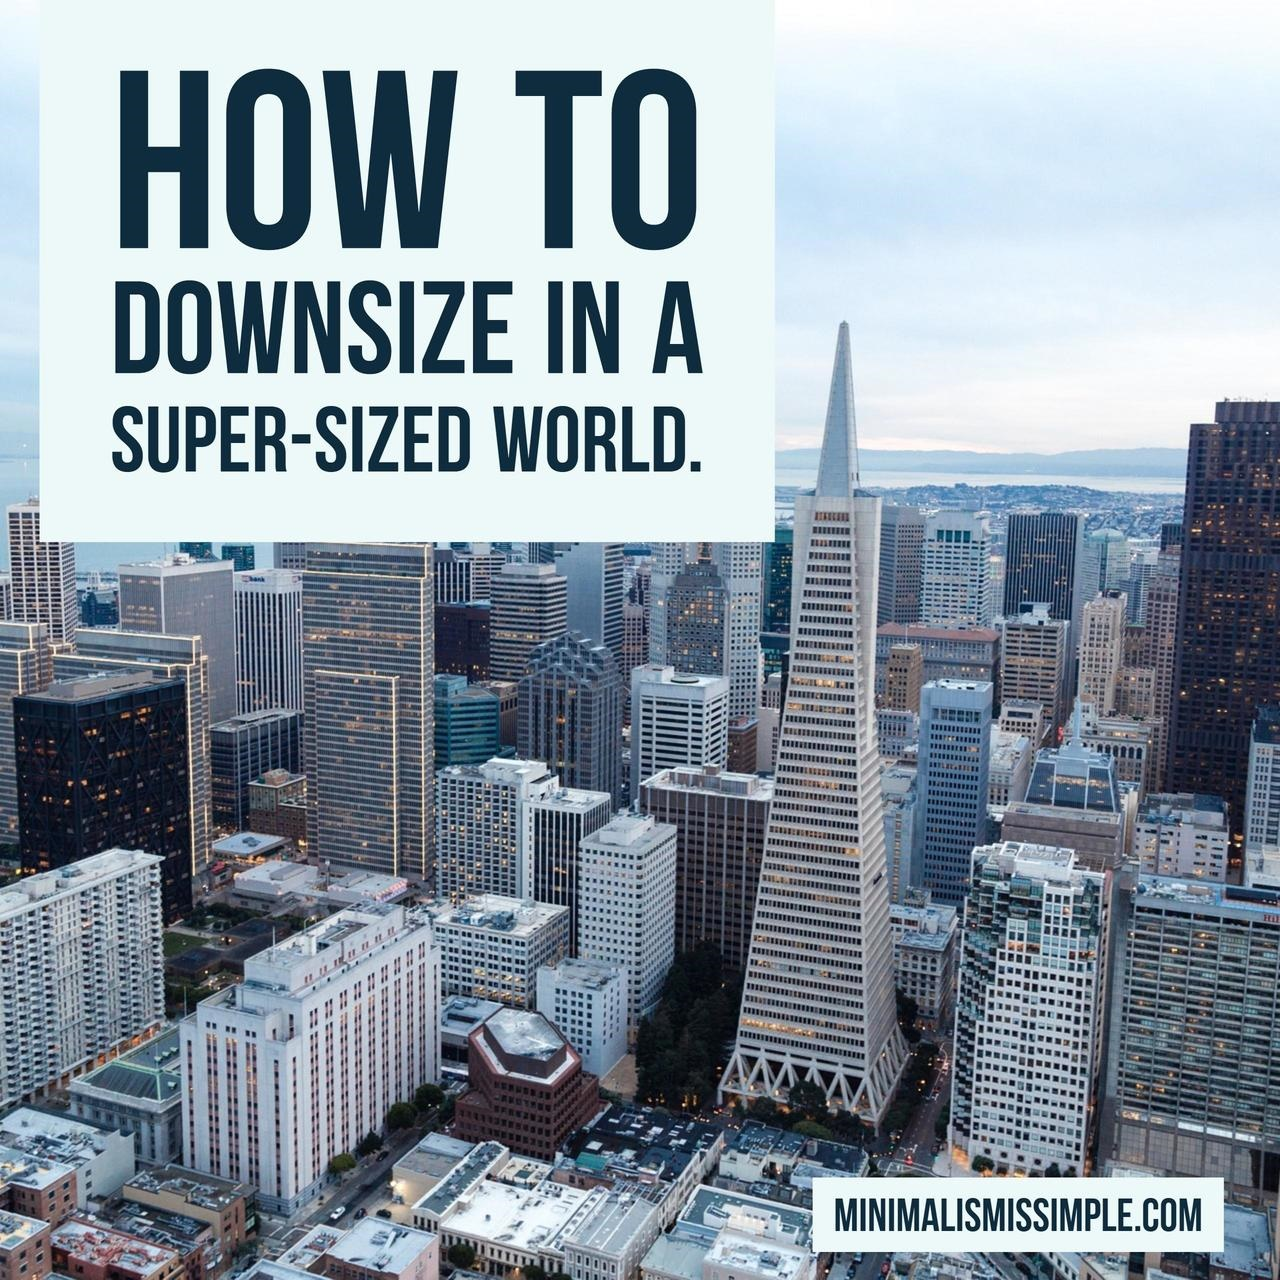 downsize in supersize world minimalismissimple.com